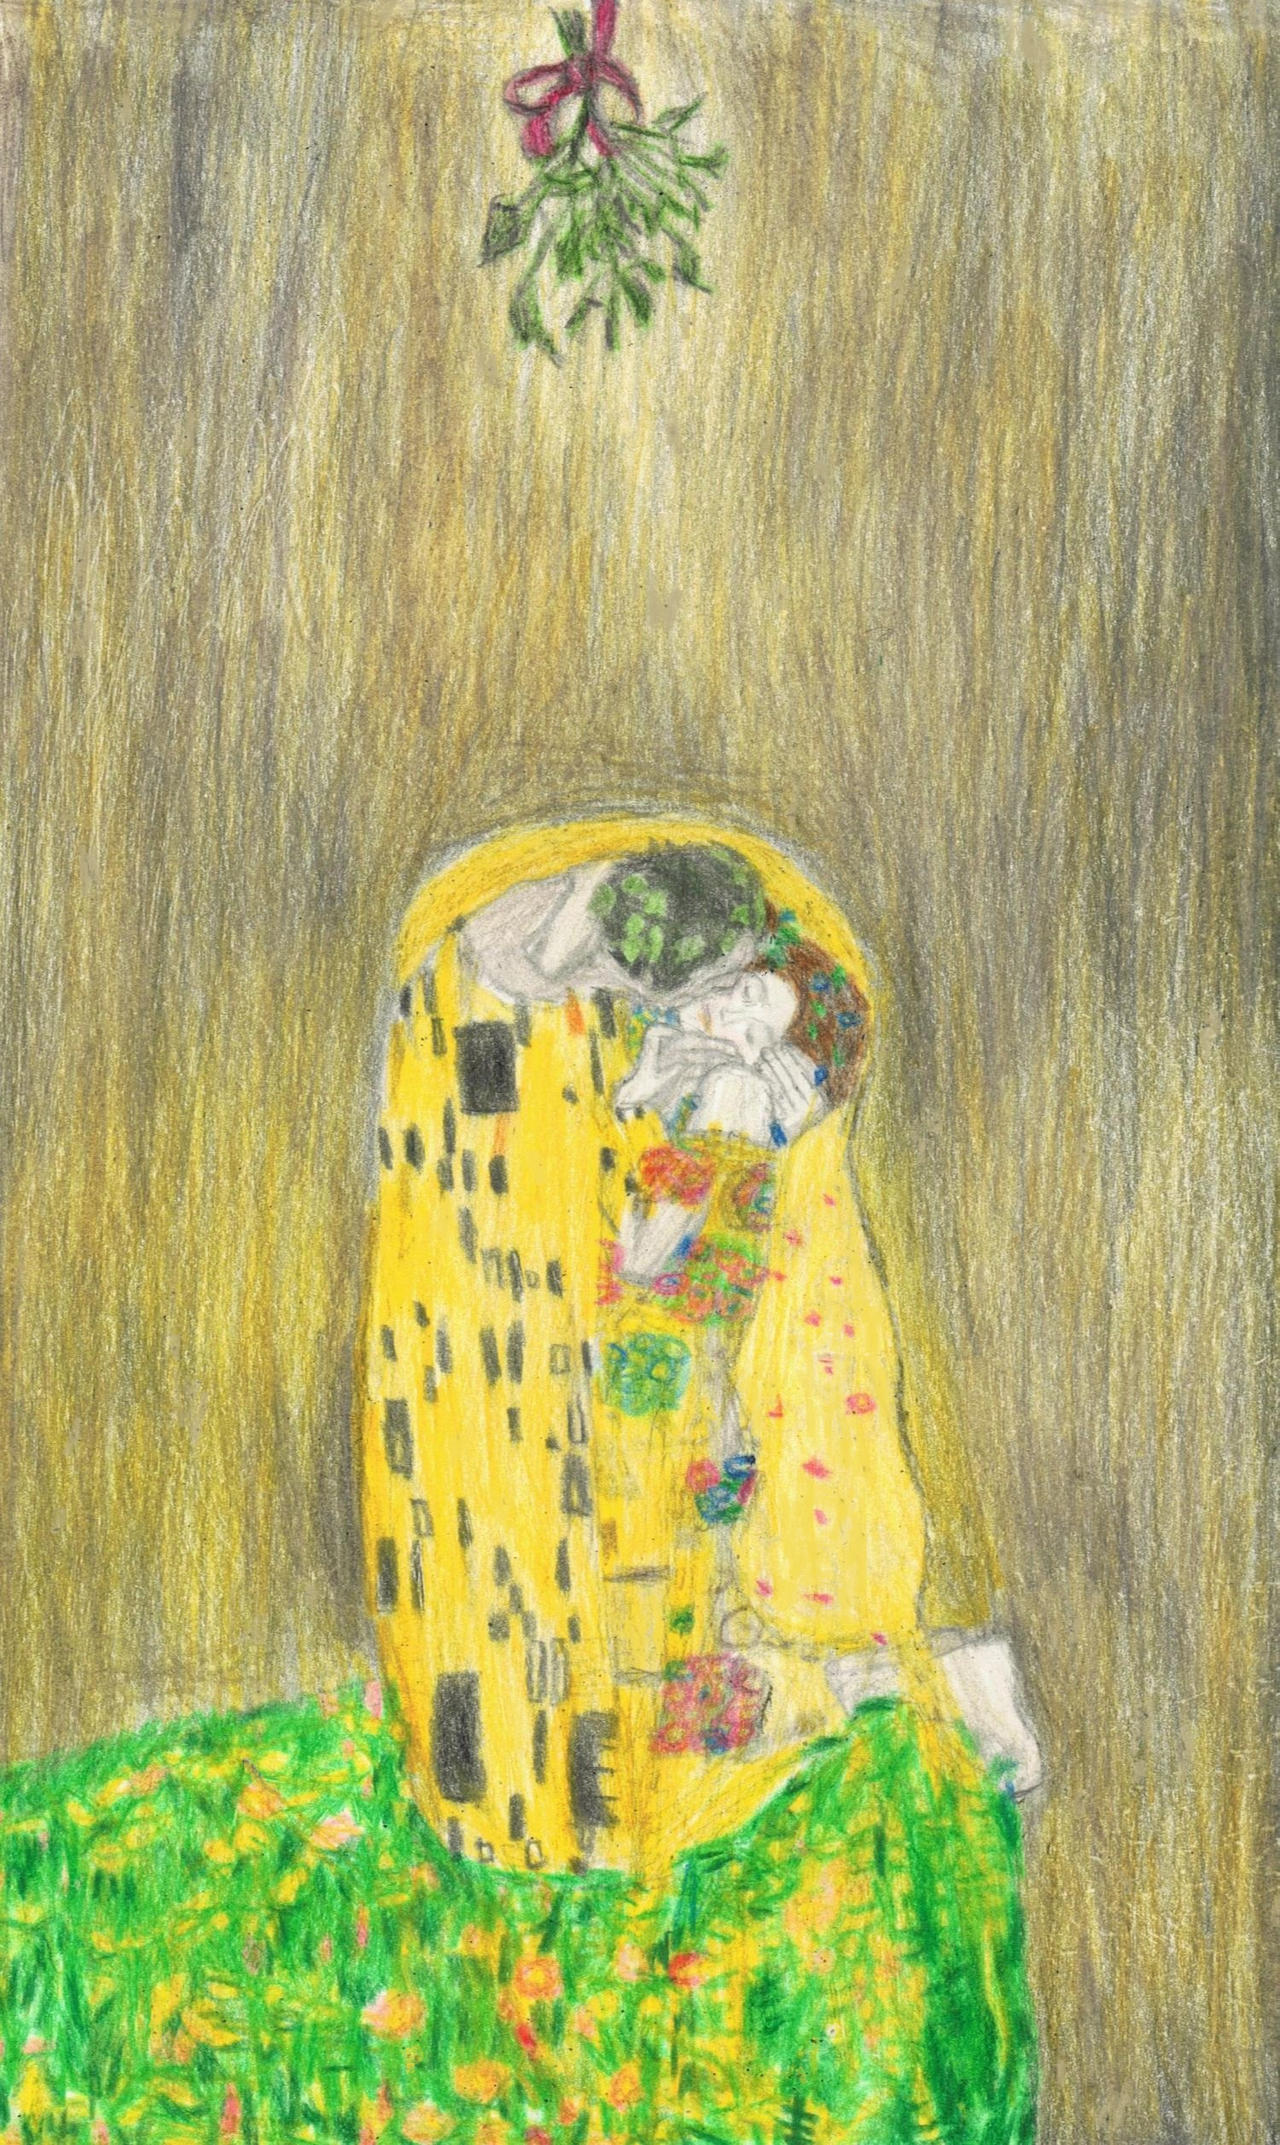 The Kiss by Klimt under the mistletoe by gagambo